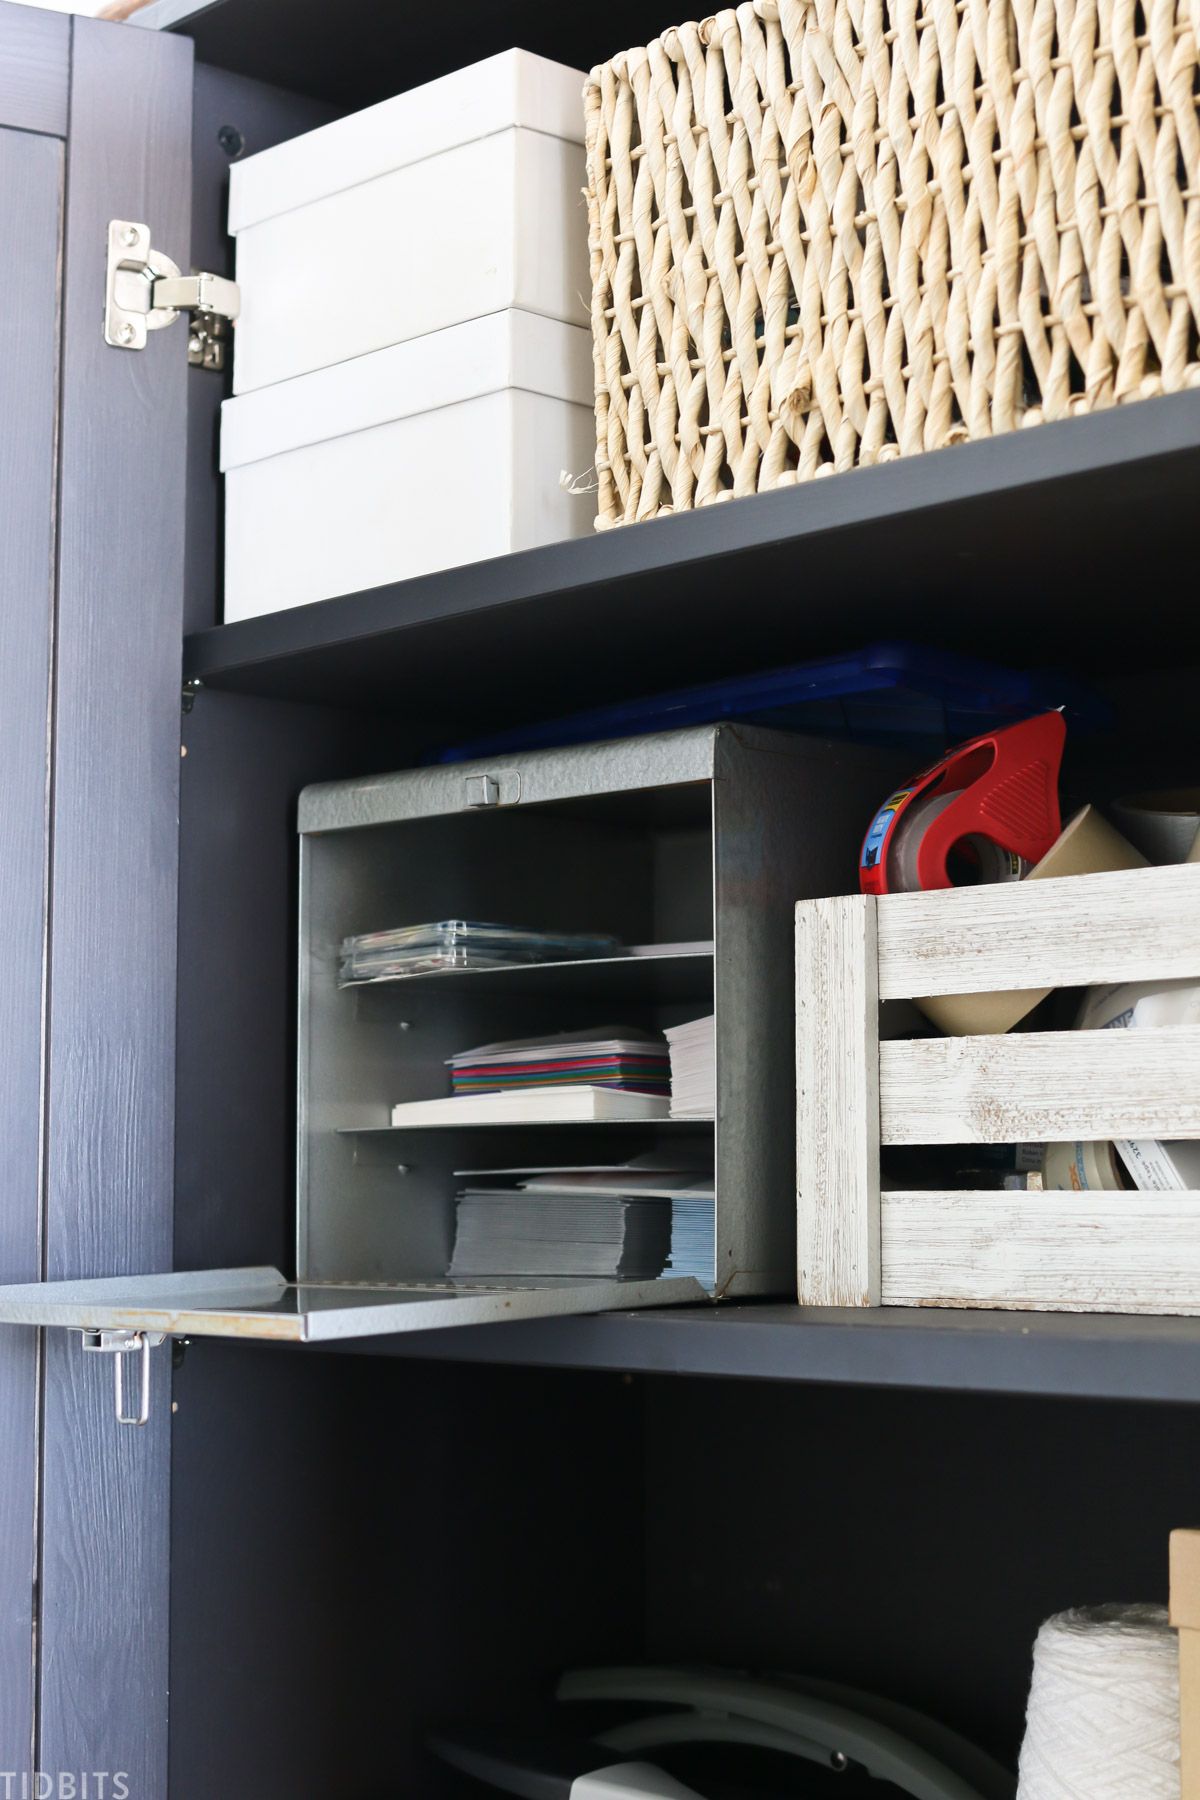 storage containers within a storage cabinet that contain school and office supplies